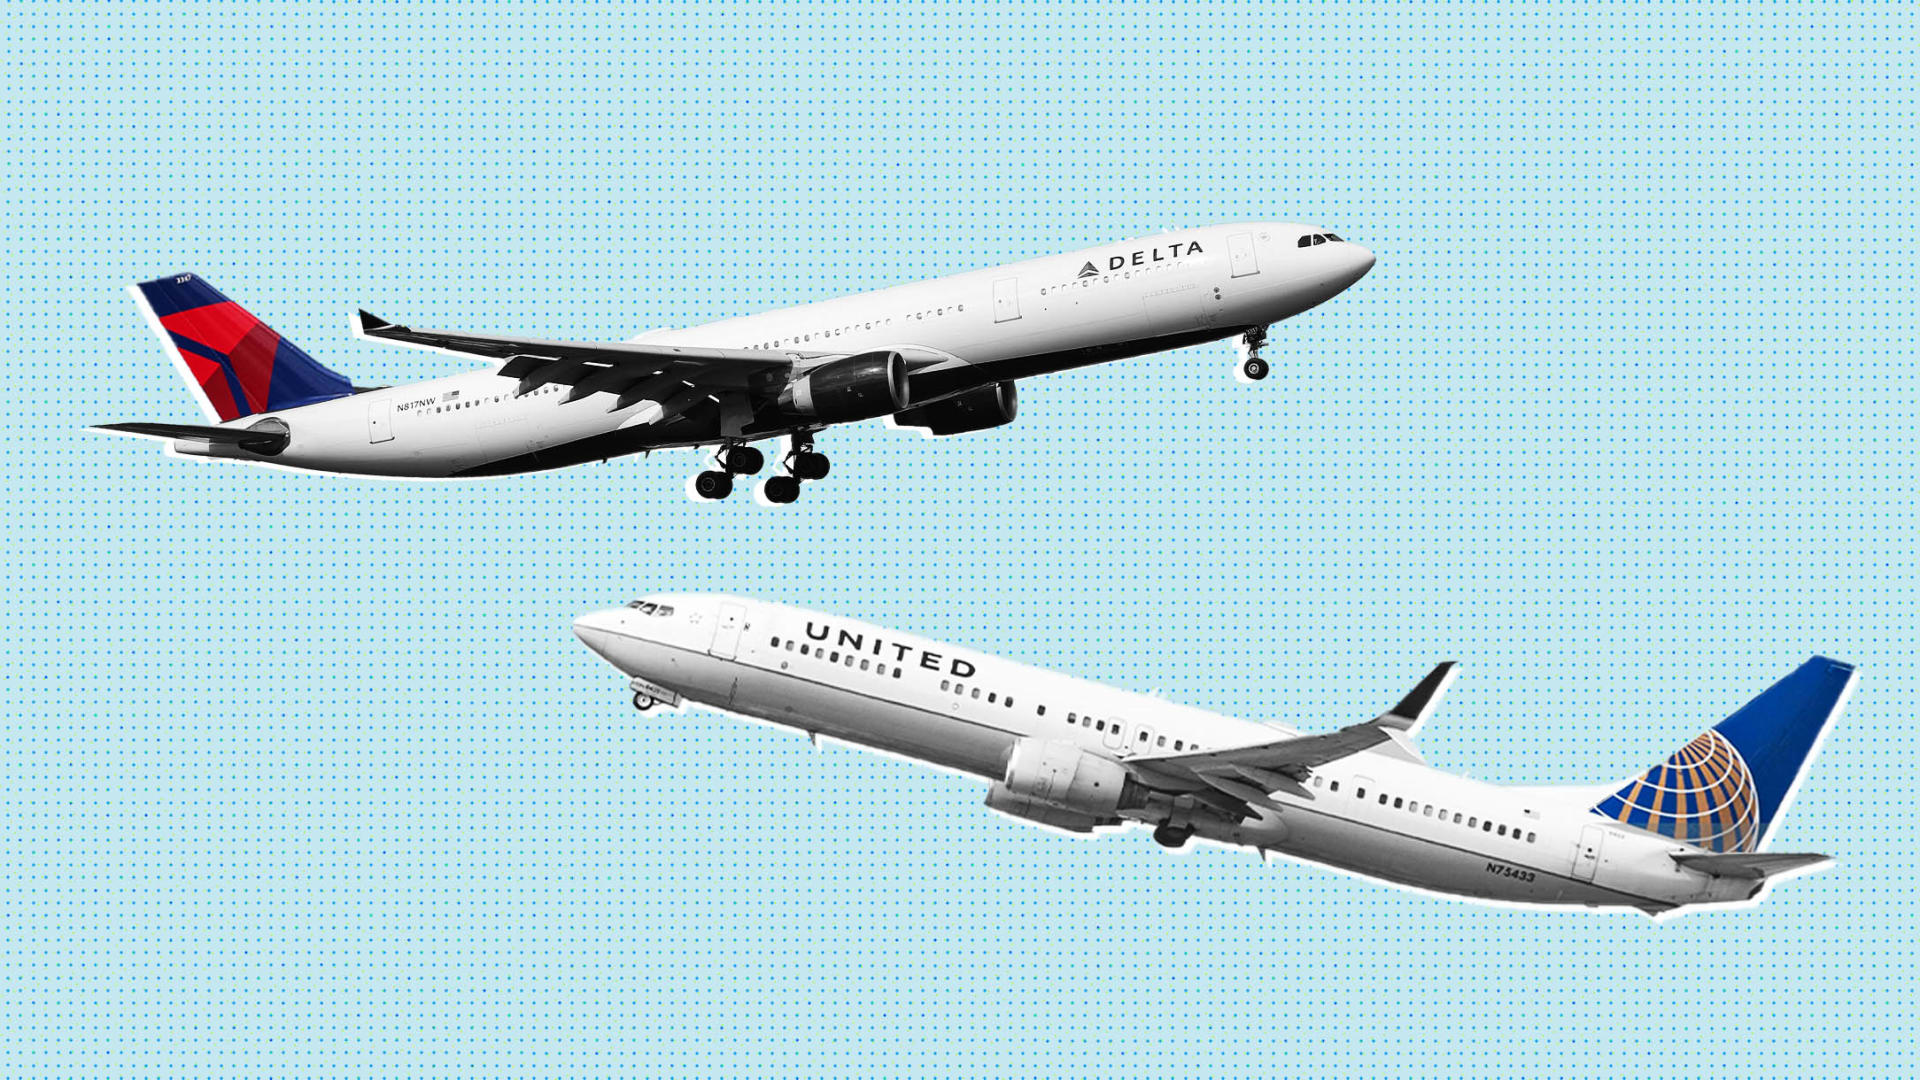 At Delta and United Airlines, These 2 Short Words Make a Big Difference for 2021